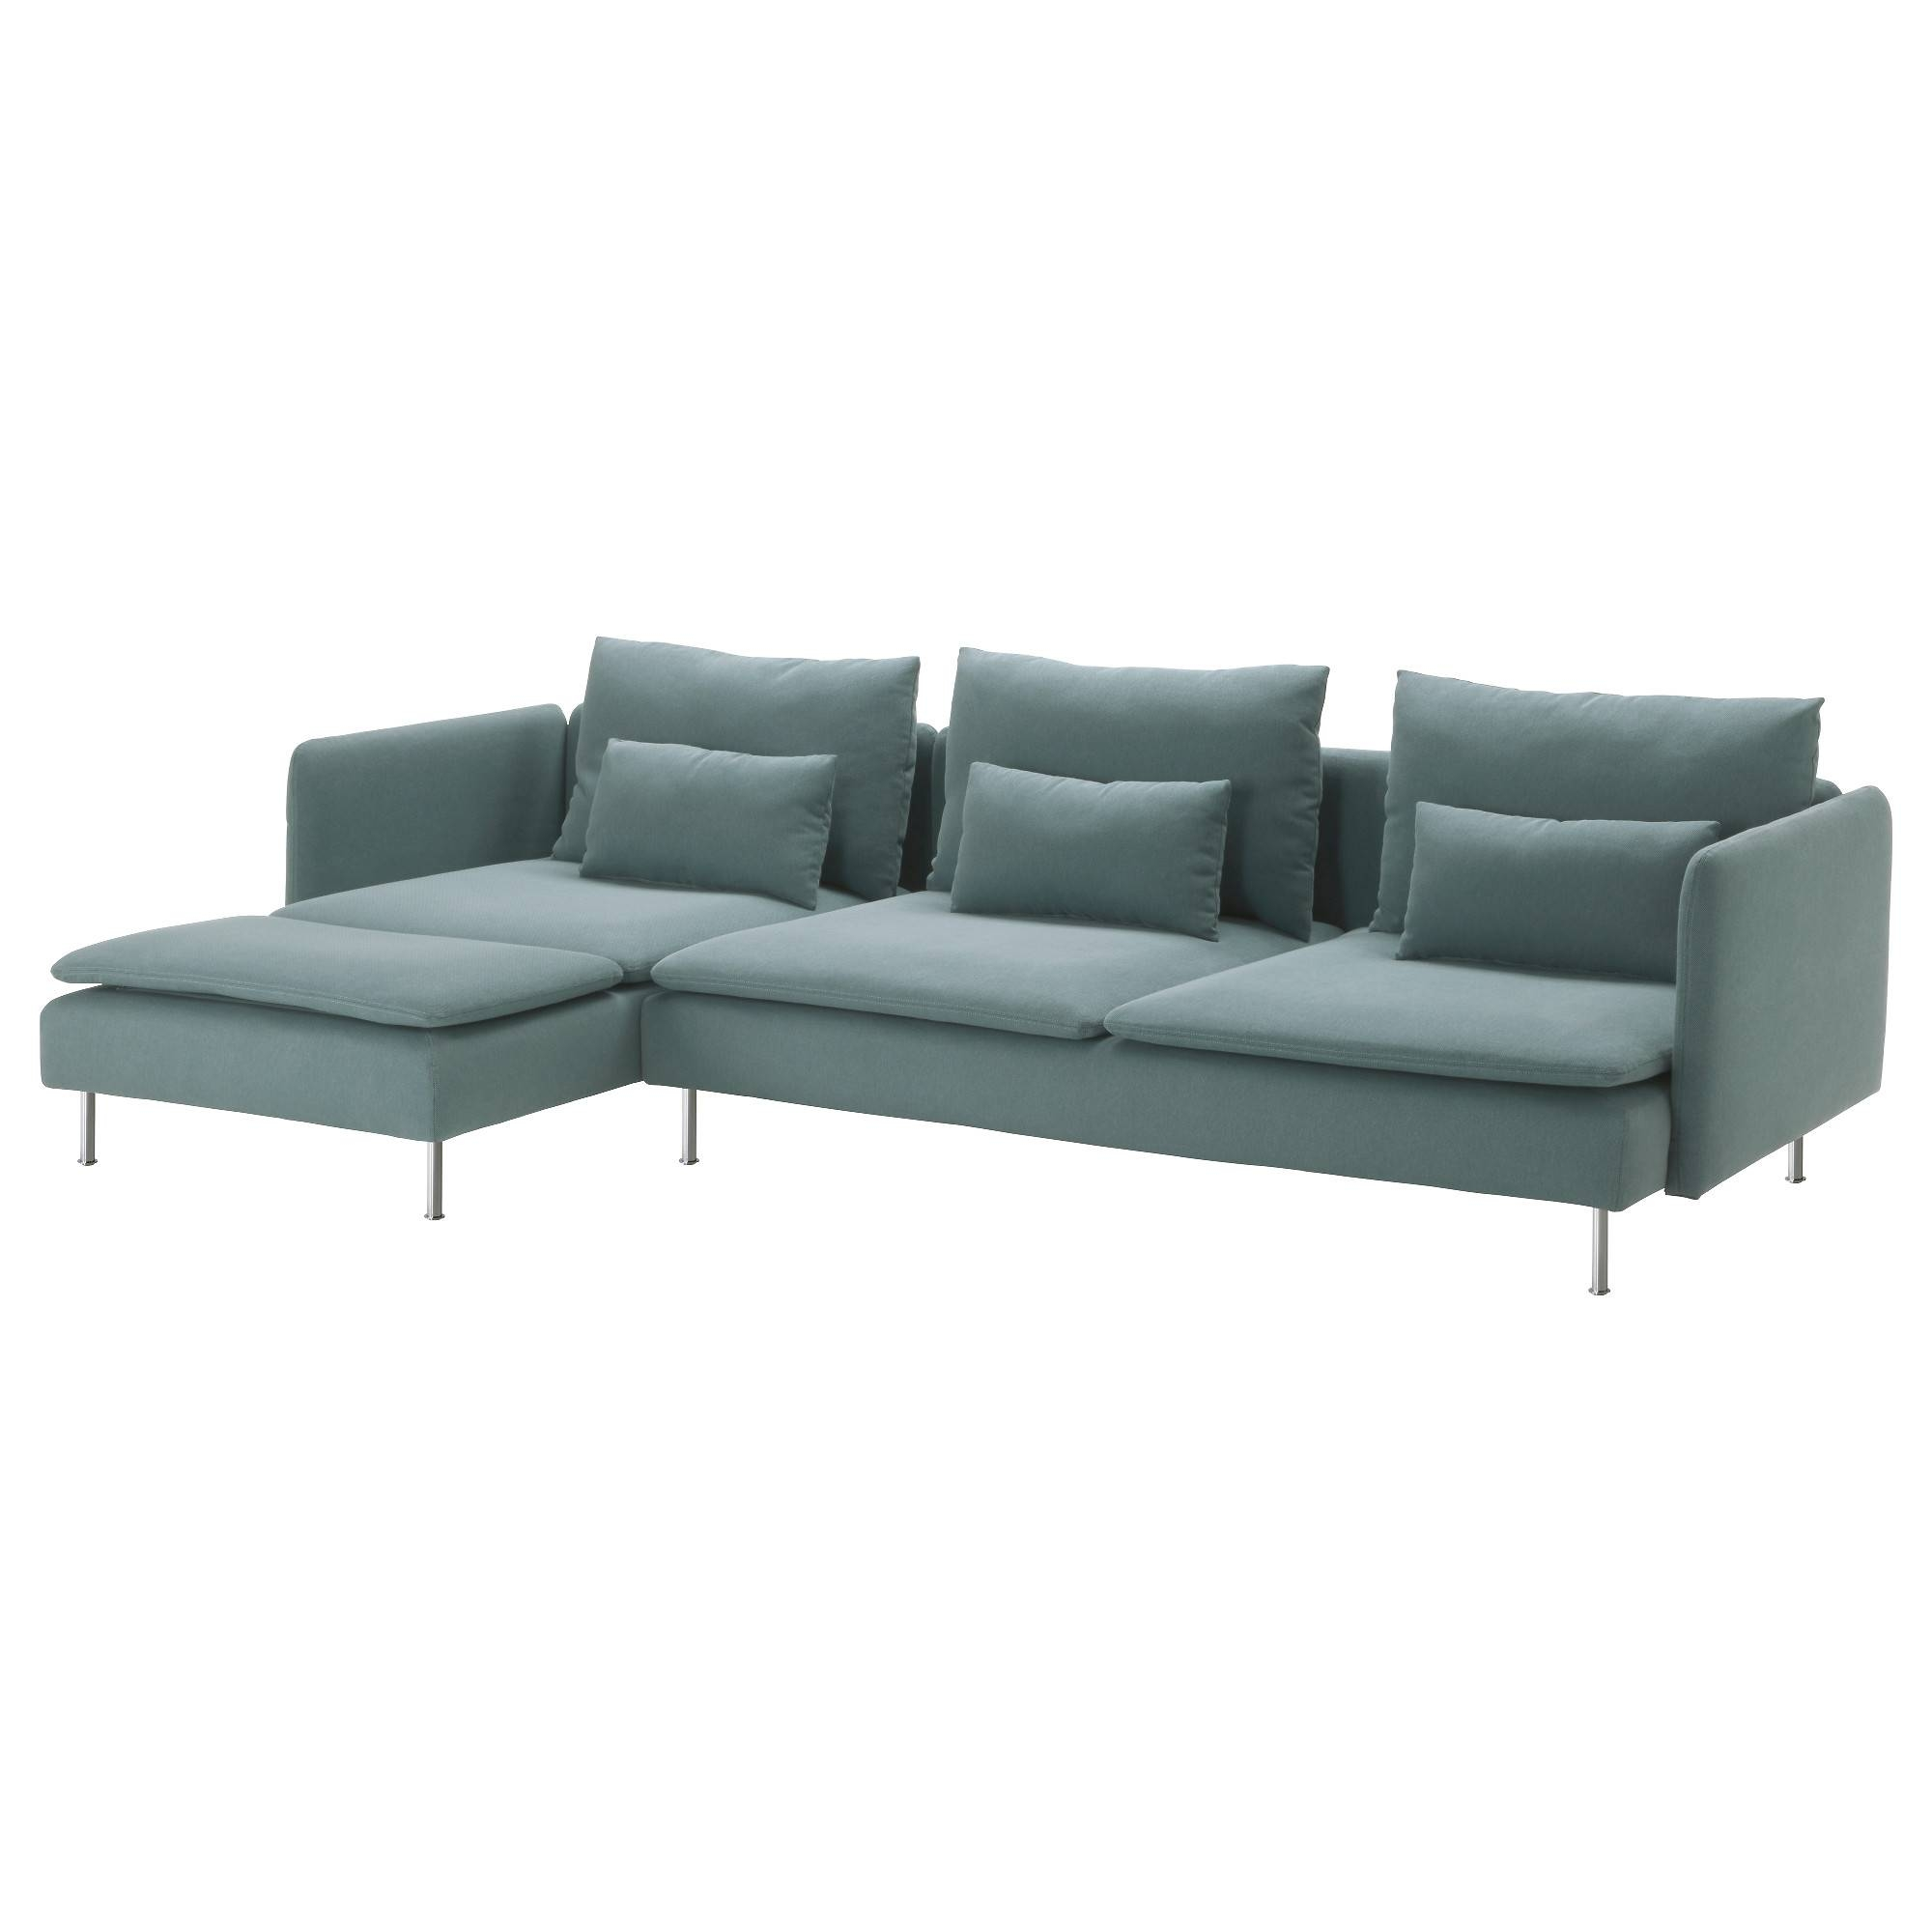 Www.ikea/piaimages/0406304_Pe583242_S5 pertaining to Compact Sectional Sofas (Image 25 of 30)